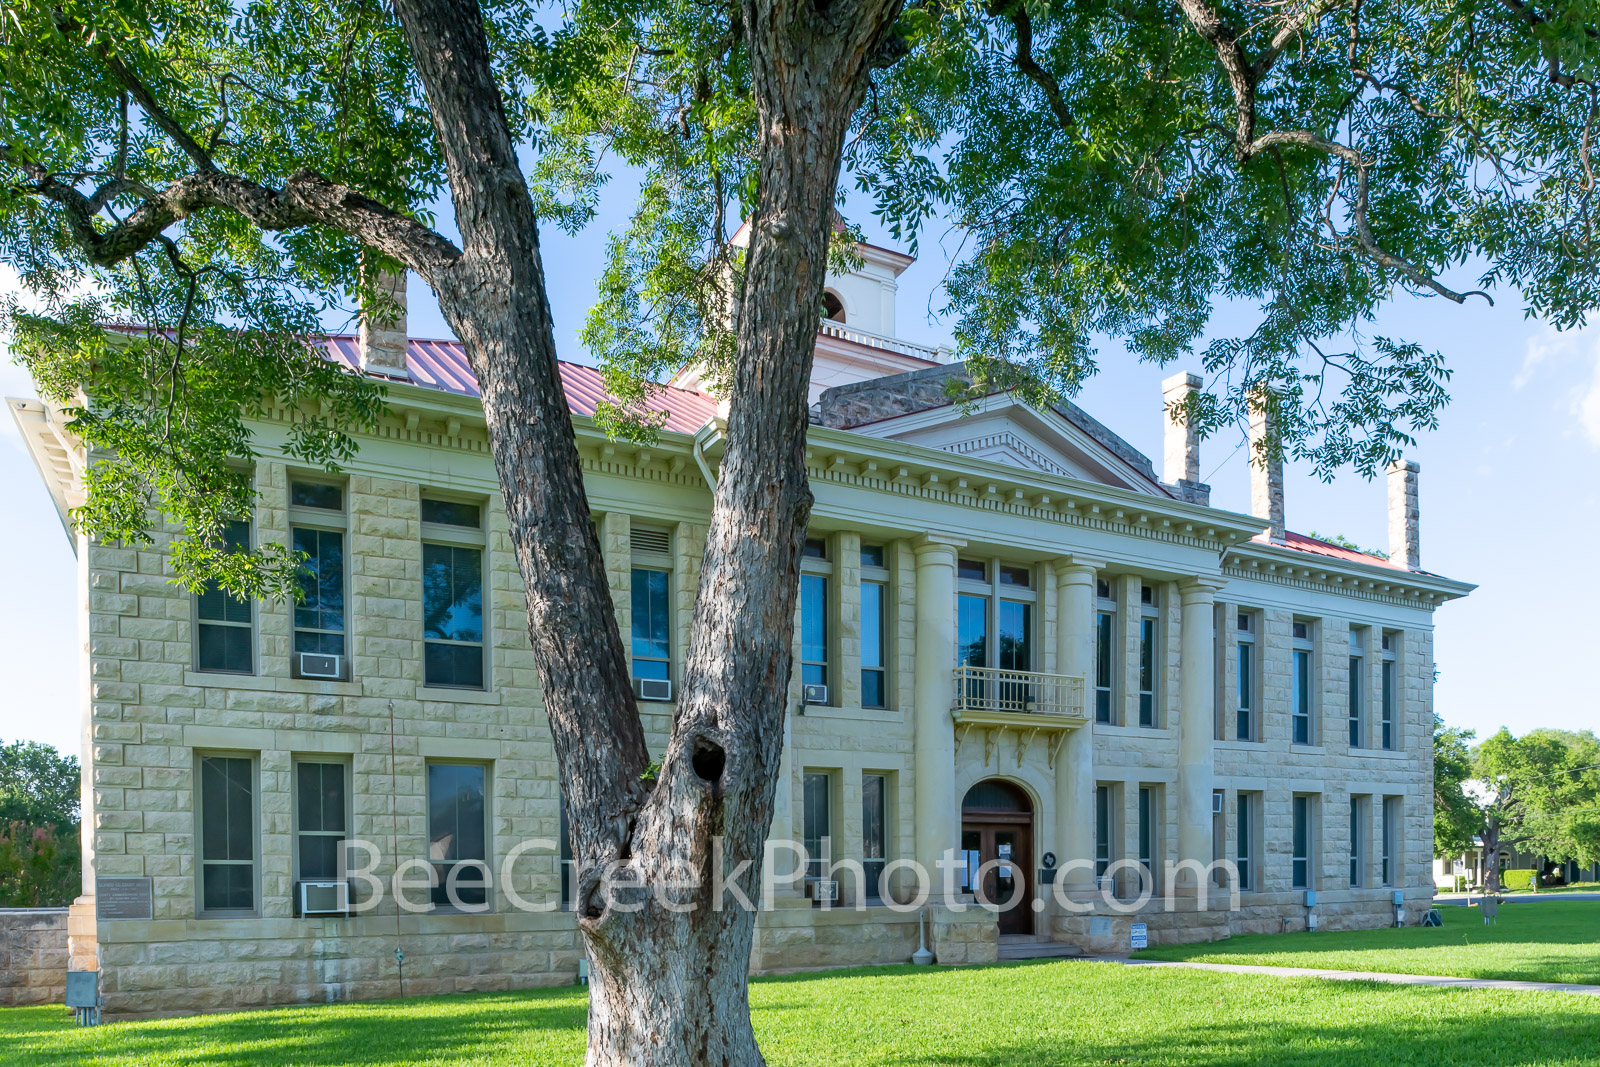 Blanco County Courthouse 2 - Blanco Country Courthouse is located in Johnson City. The orginal courthouse was located in the...